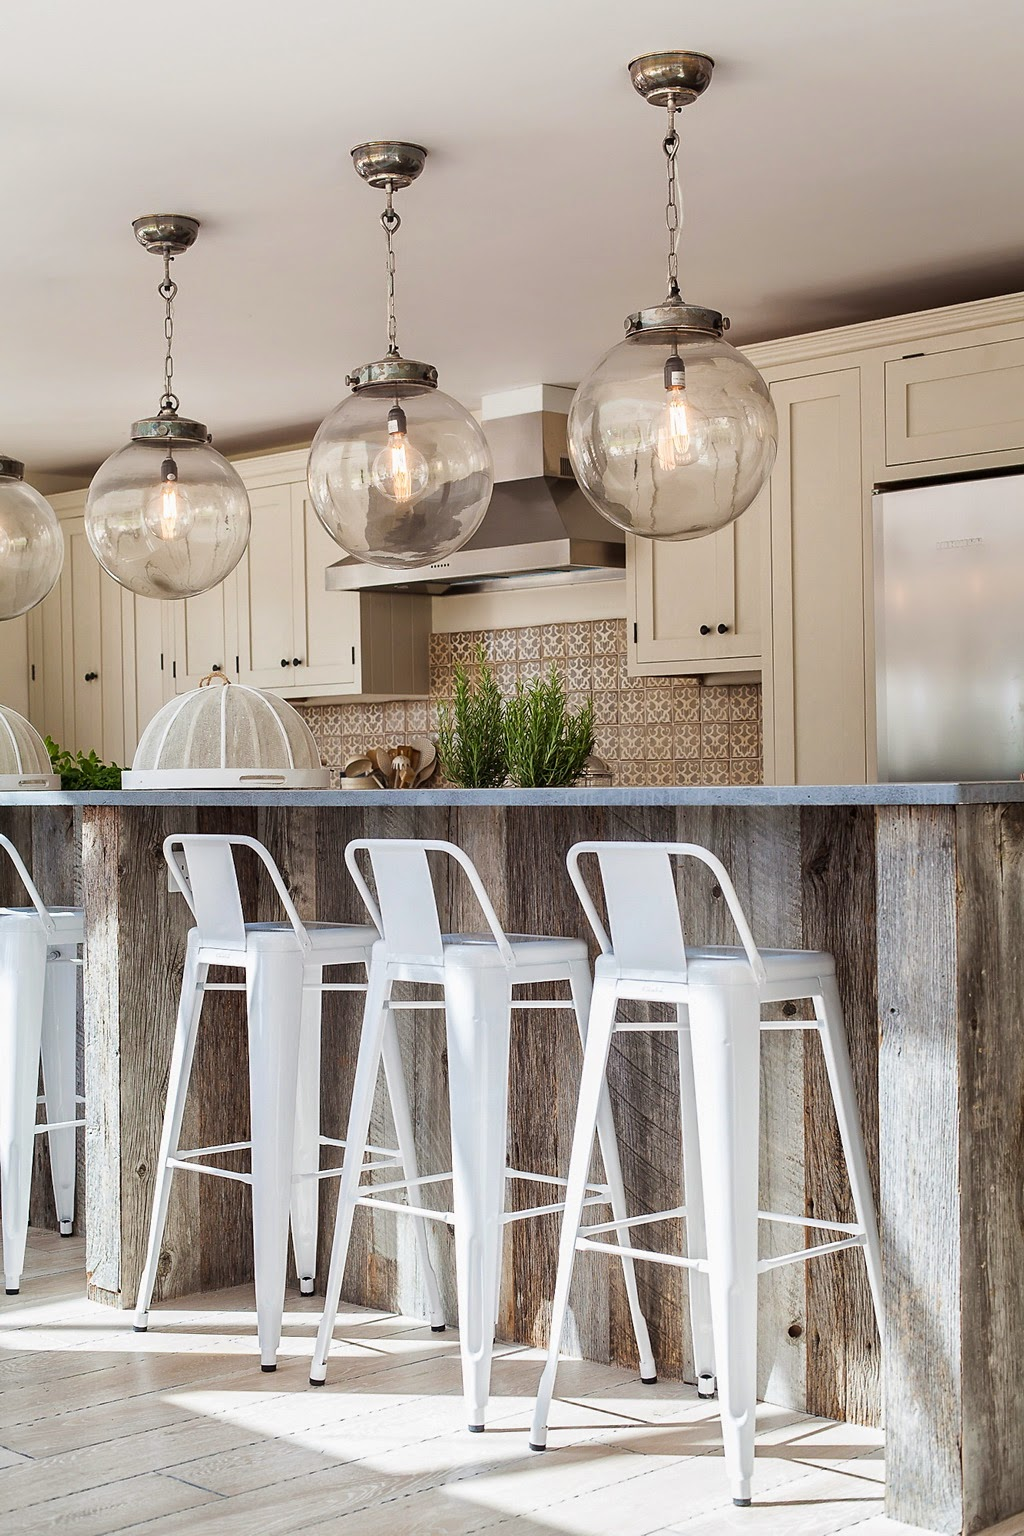 Globe Convert Recessed Light To Pendant In Kitchen With White Stools - Good Convert Recessed Light To Pendant HomesFeed